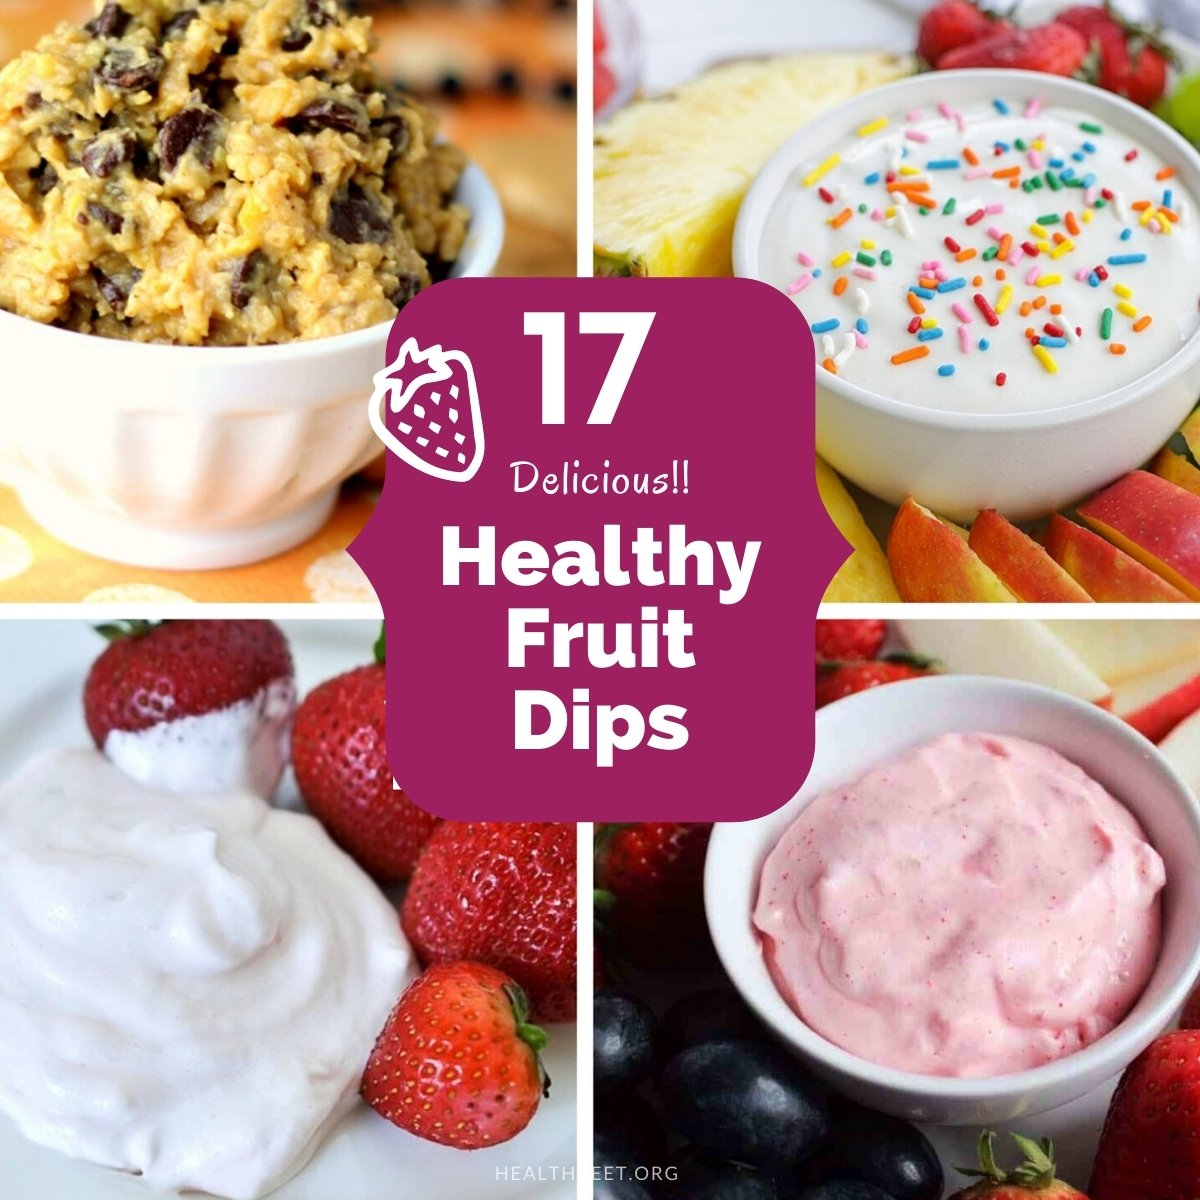 17 Delicious Healthy Fruit Dips